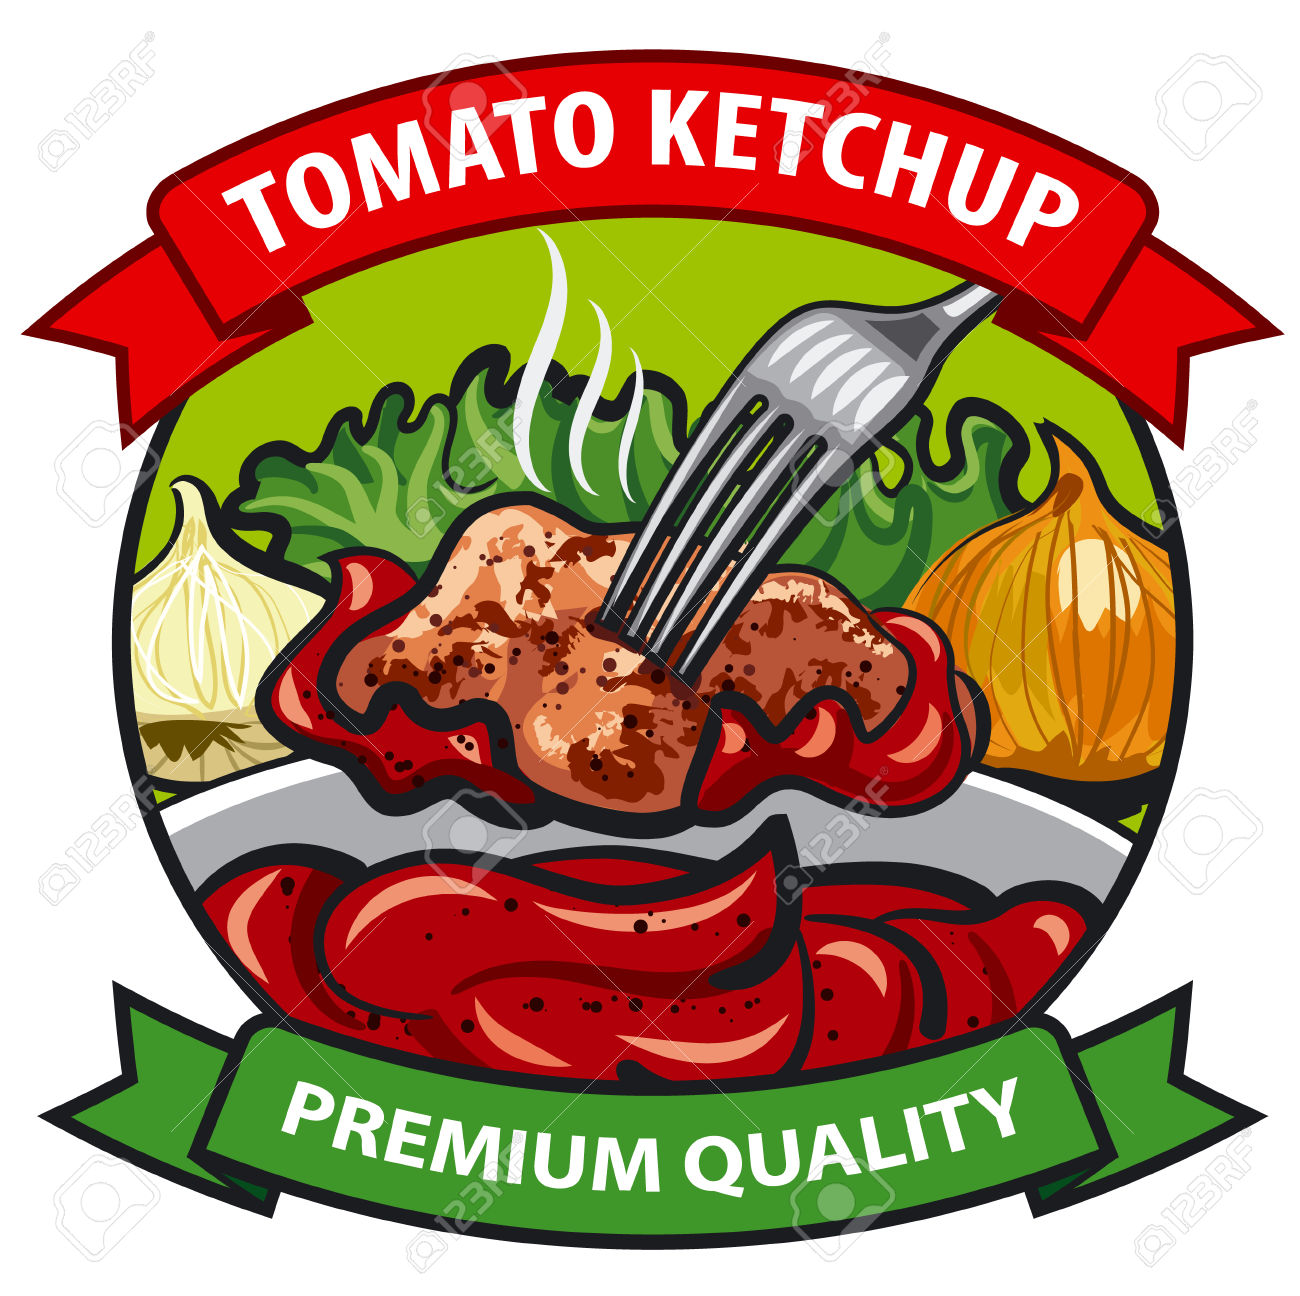 Tomato Ketchup Label Design, Tomato Sauce With Meat, Onion.